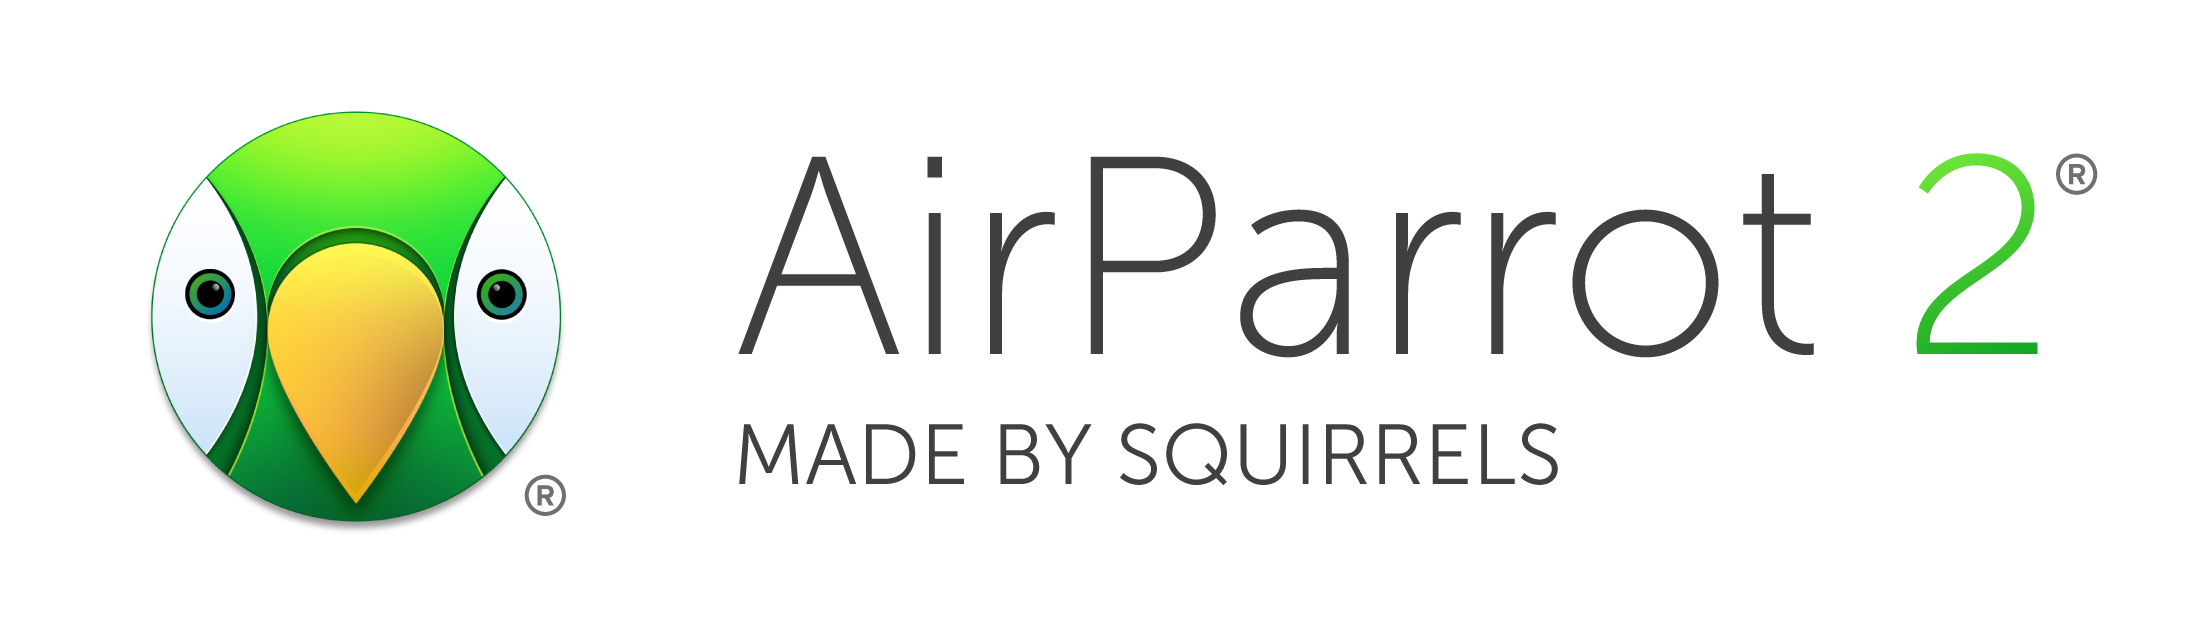 AirParrot-2-grey-g2-side.png